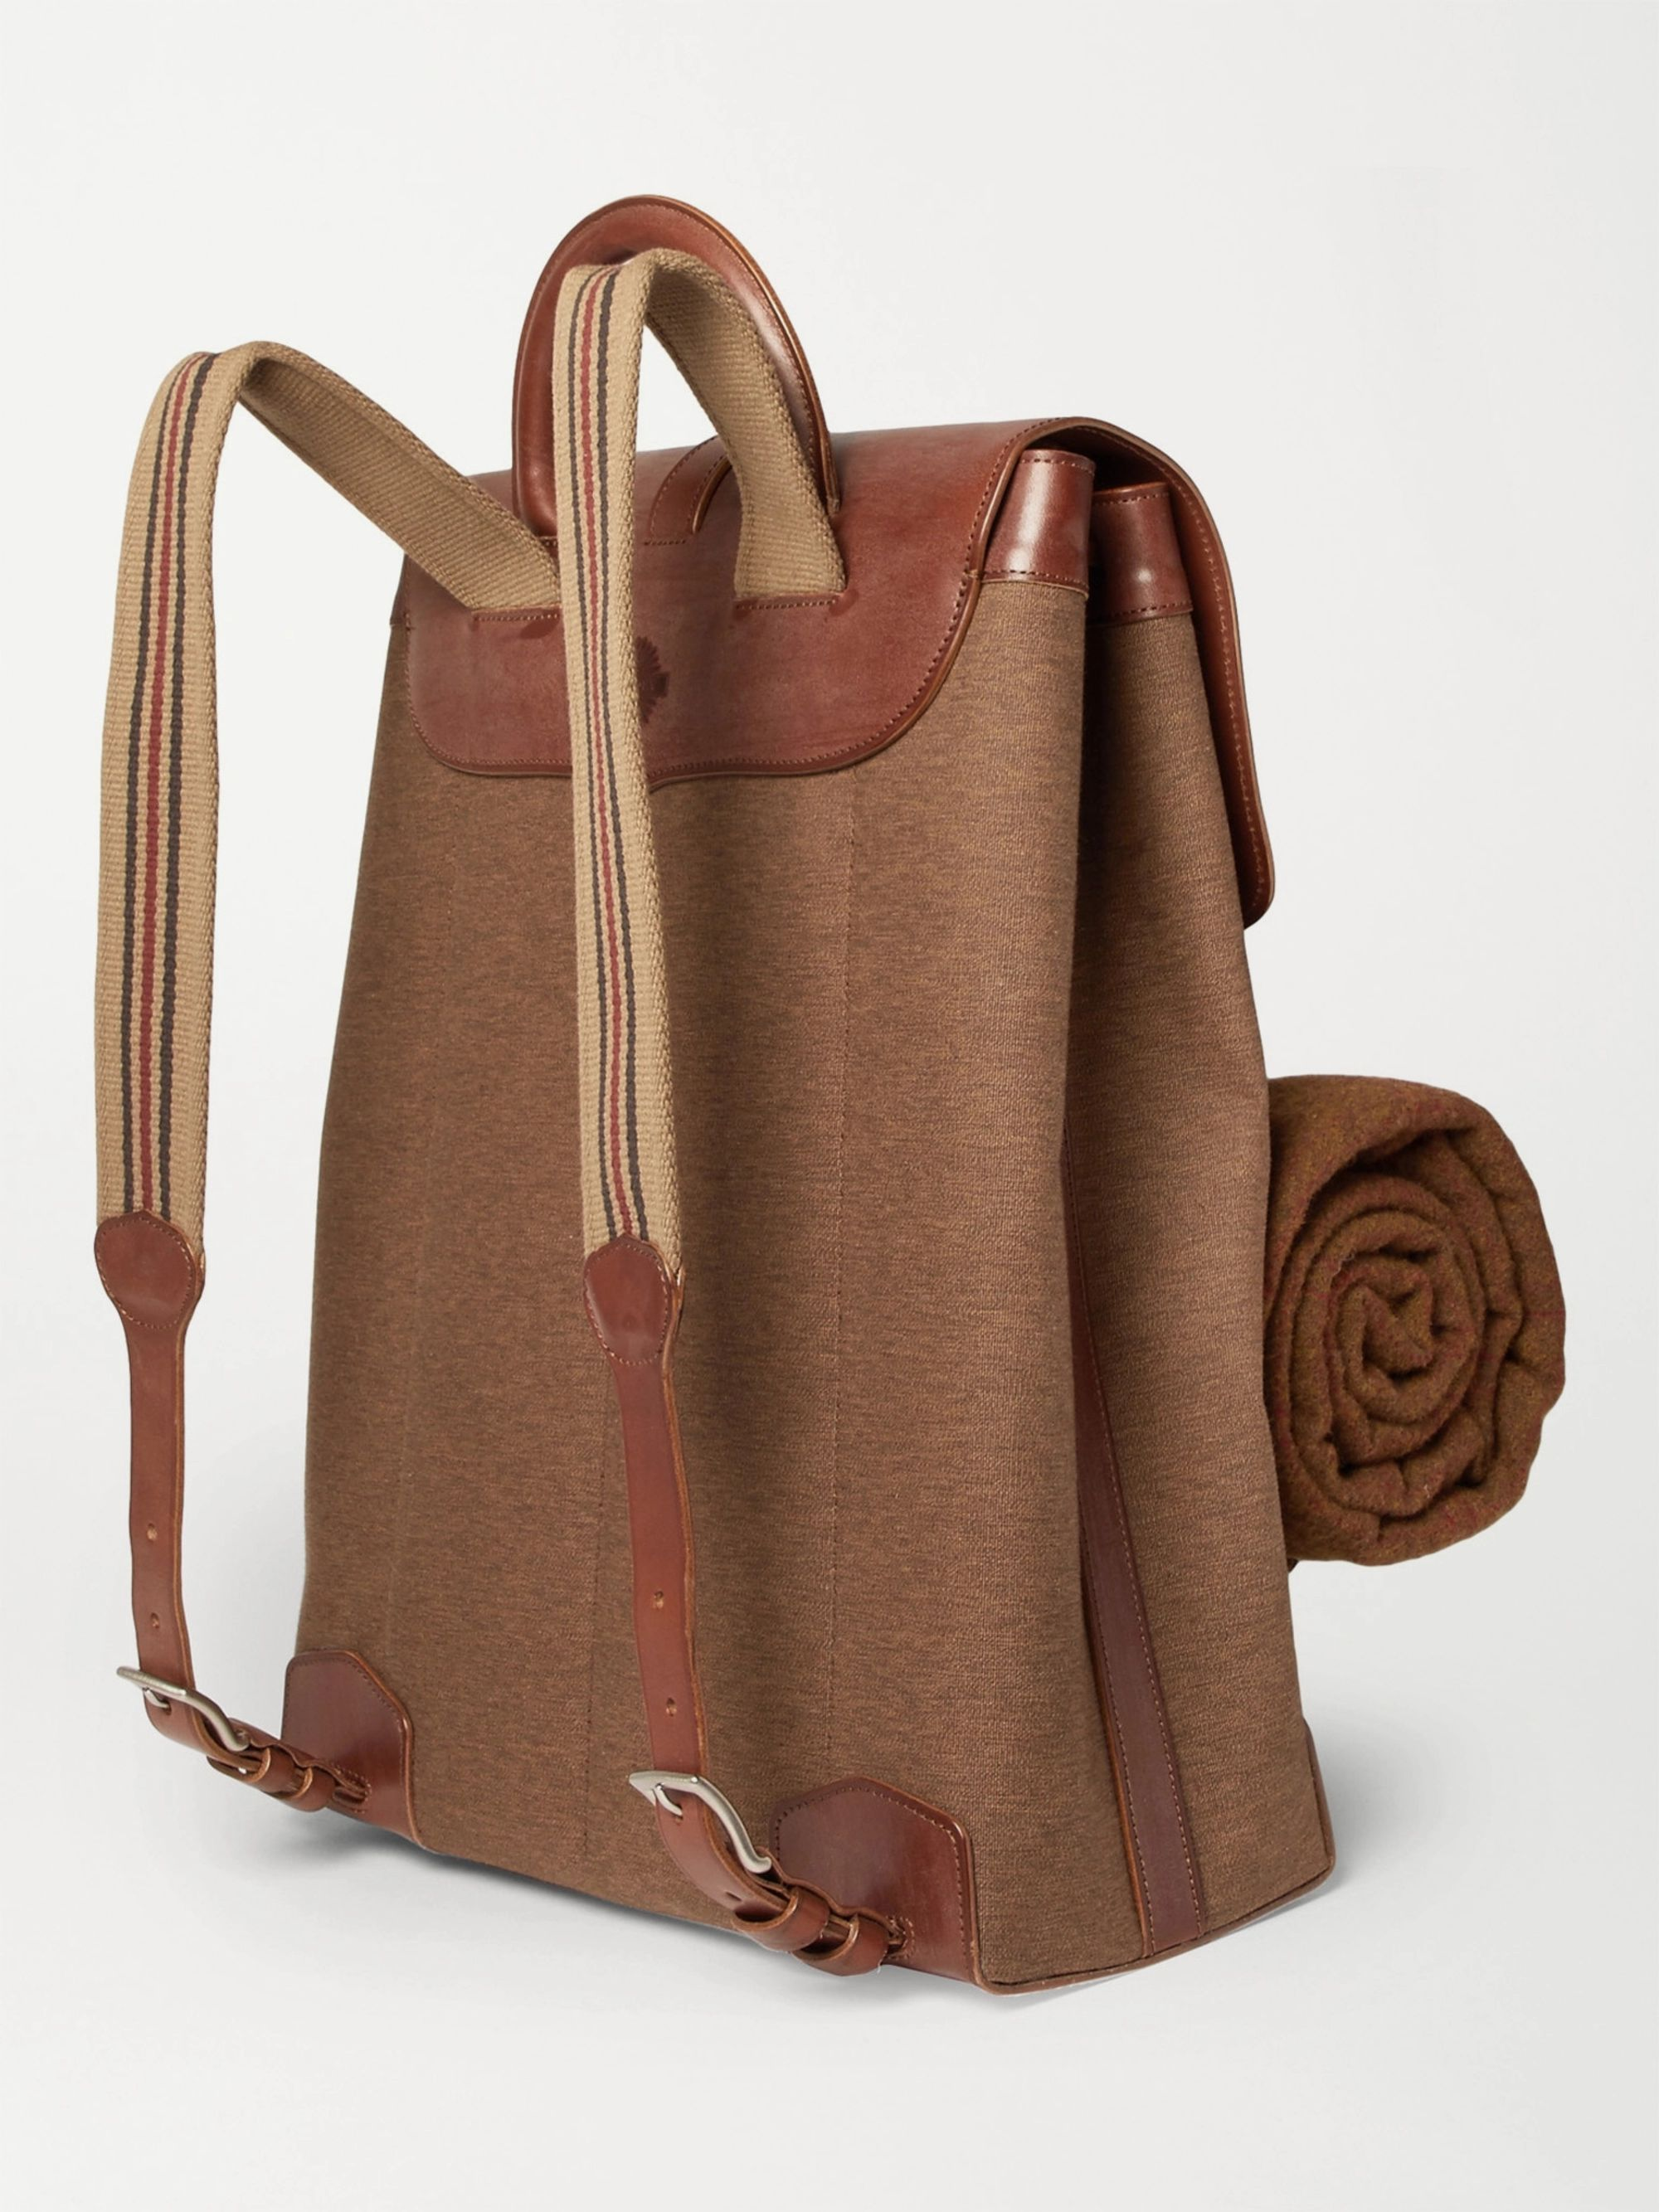 Purdey Leather-Panelled Canvas Backpack and Wool Blanket